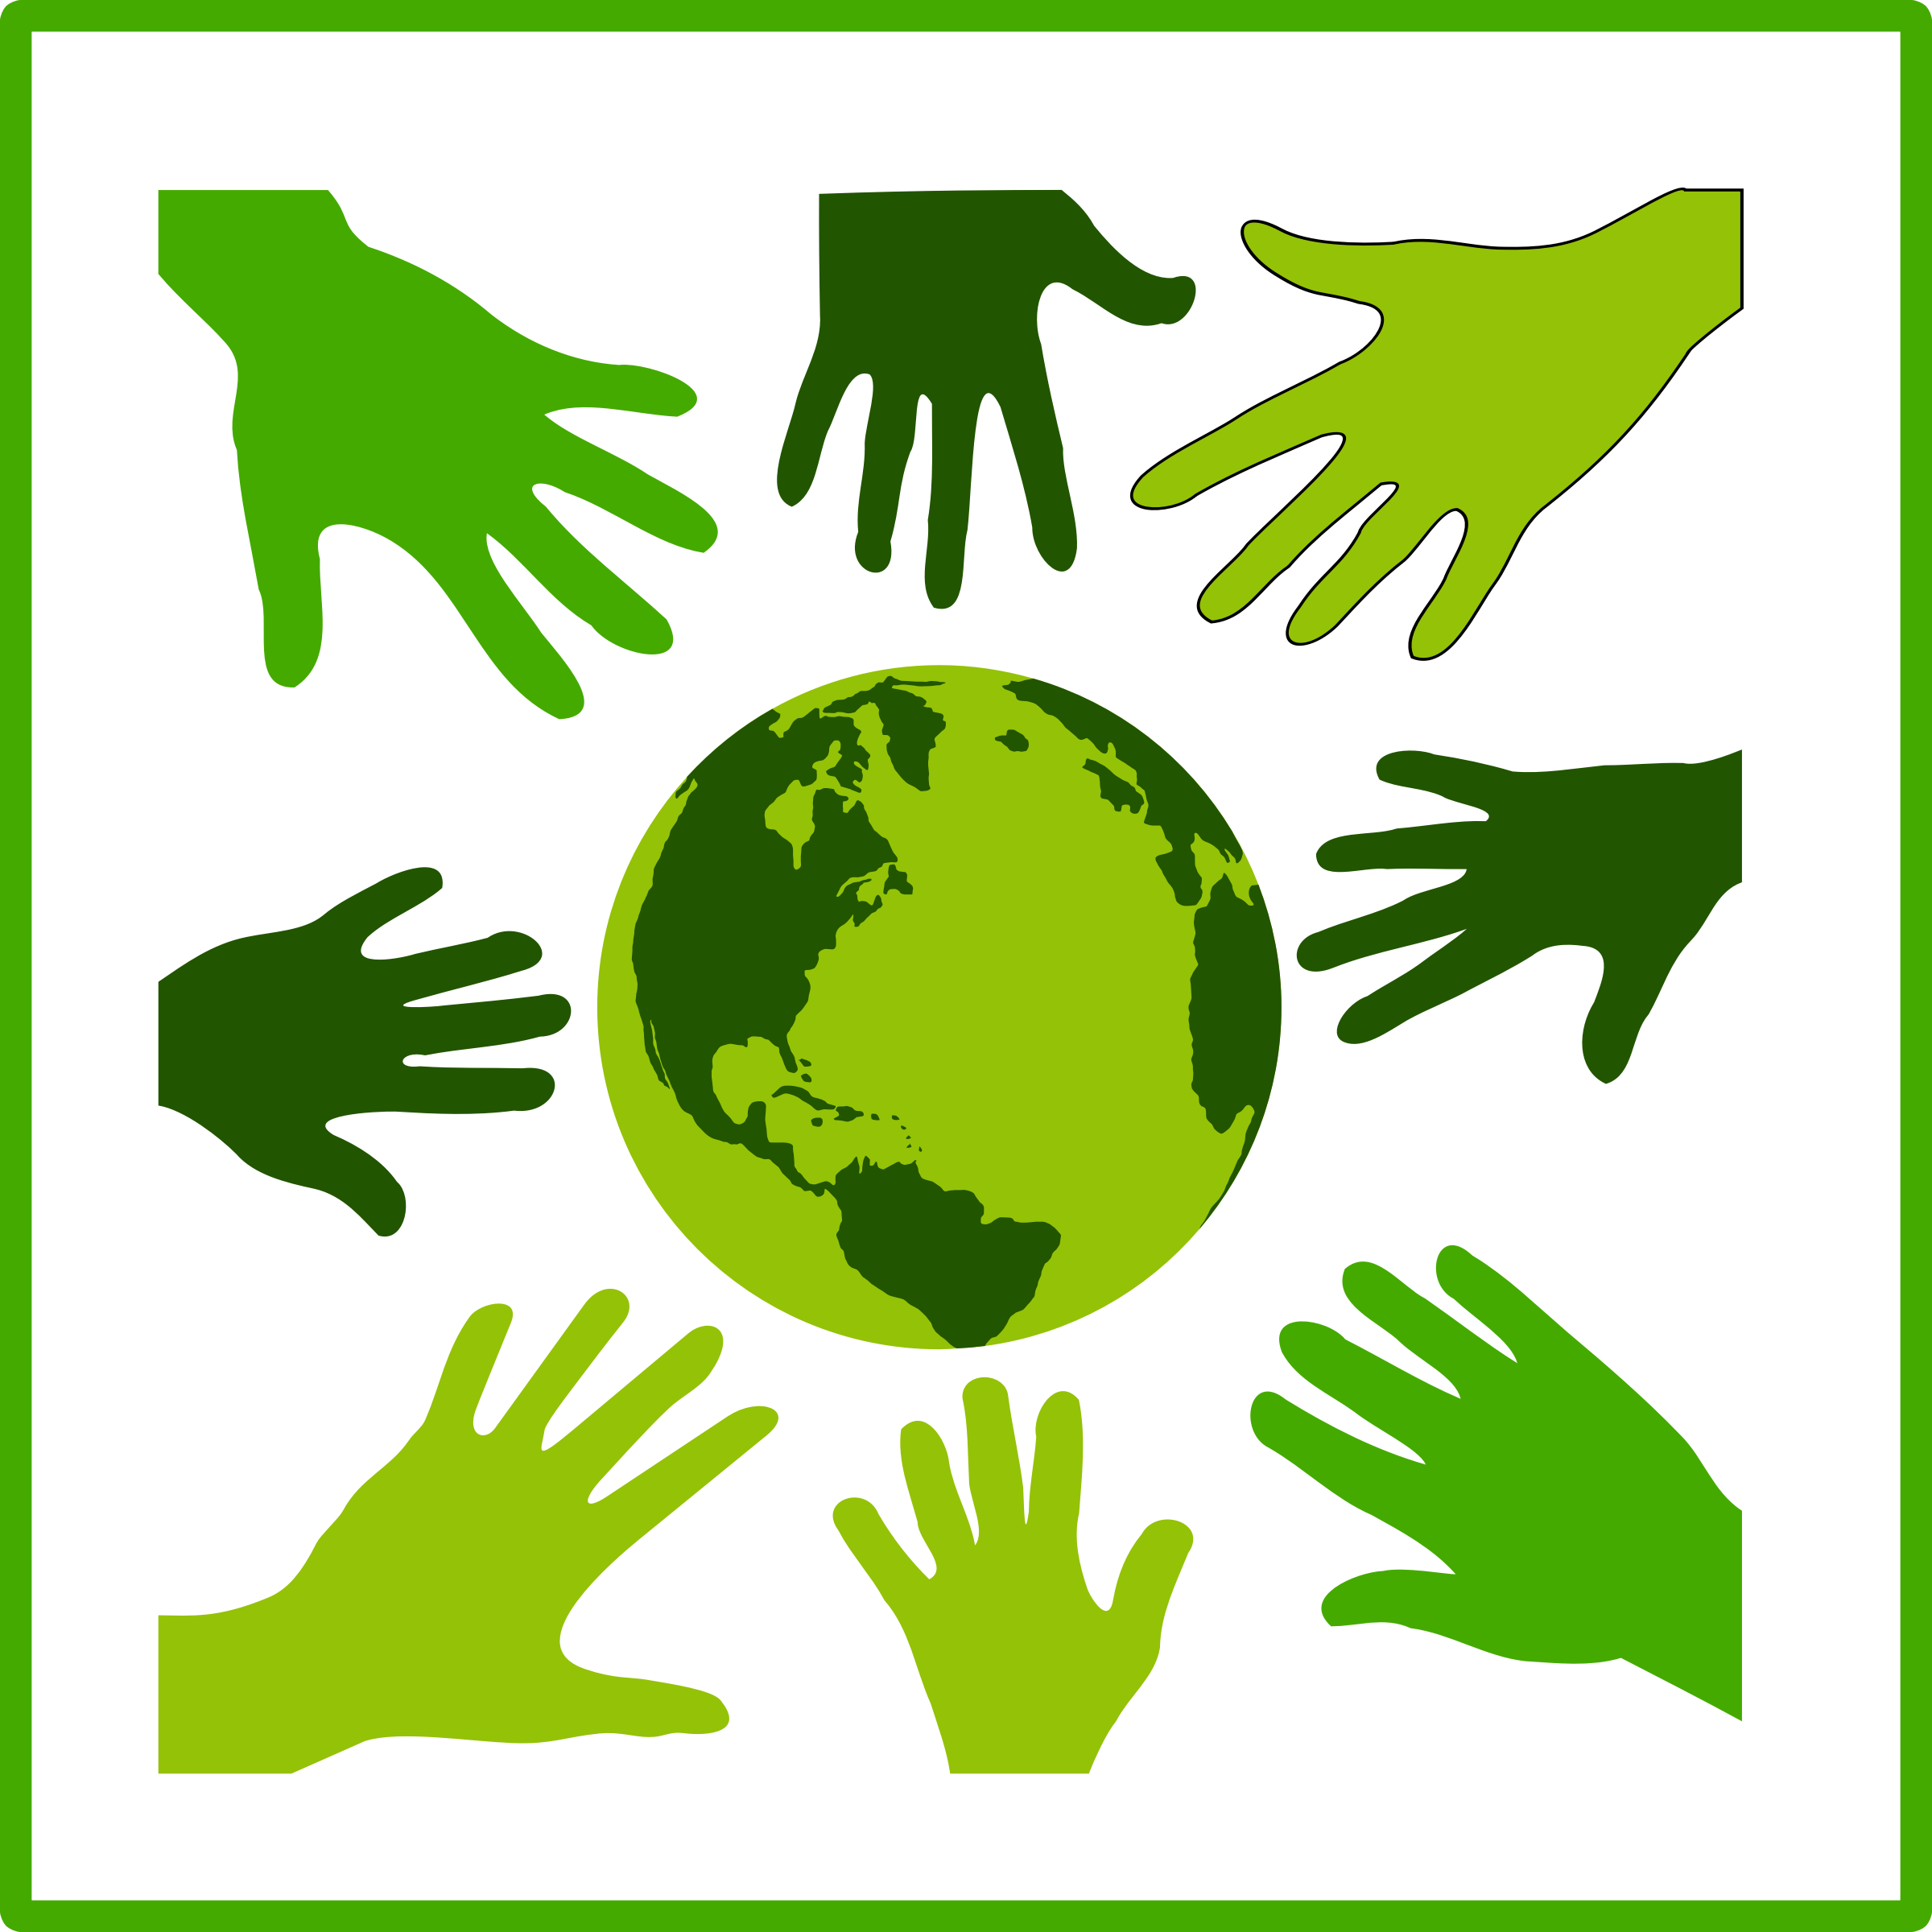 clipart eco green solidarity icon gods open hands clipart open hands clip art right and left